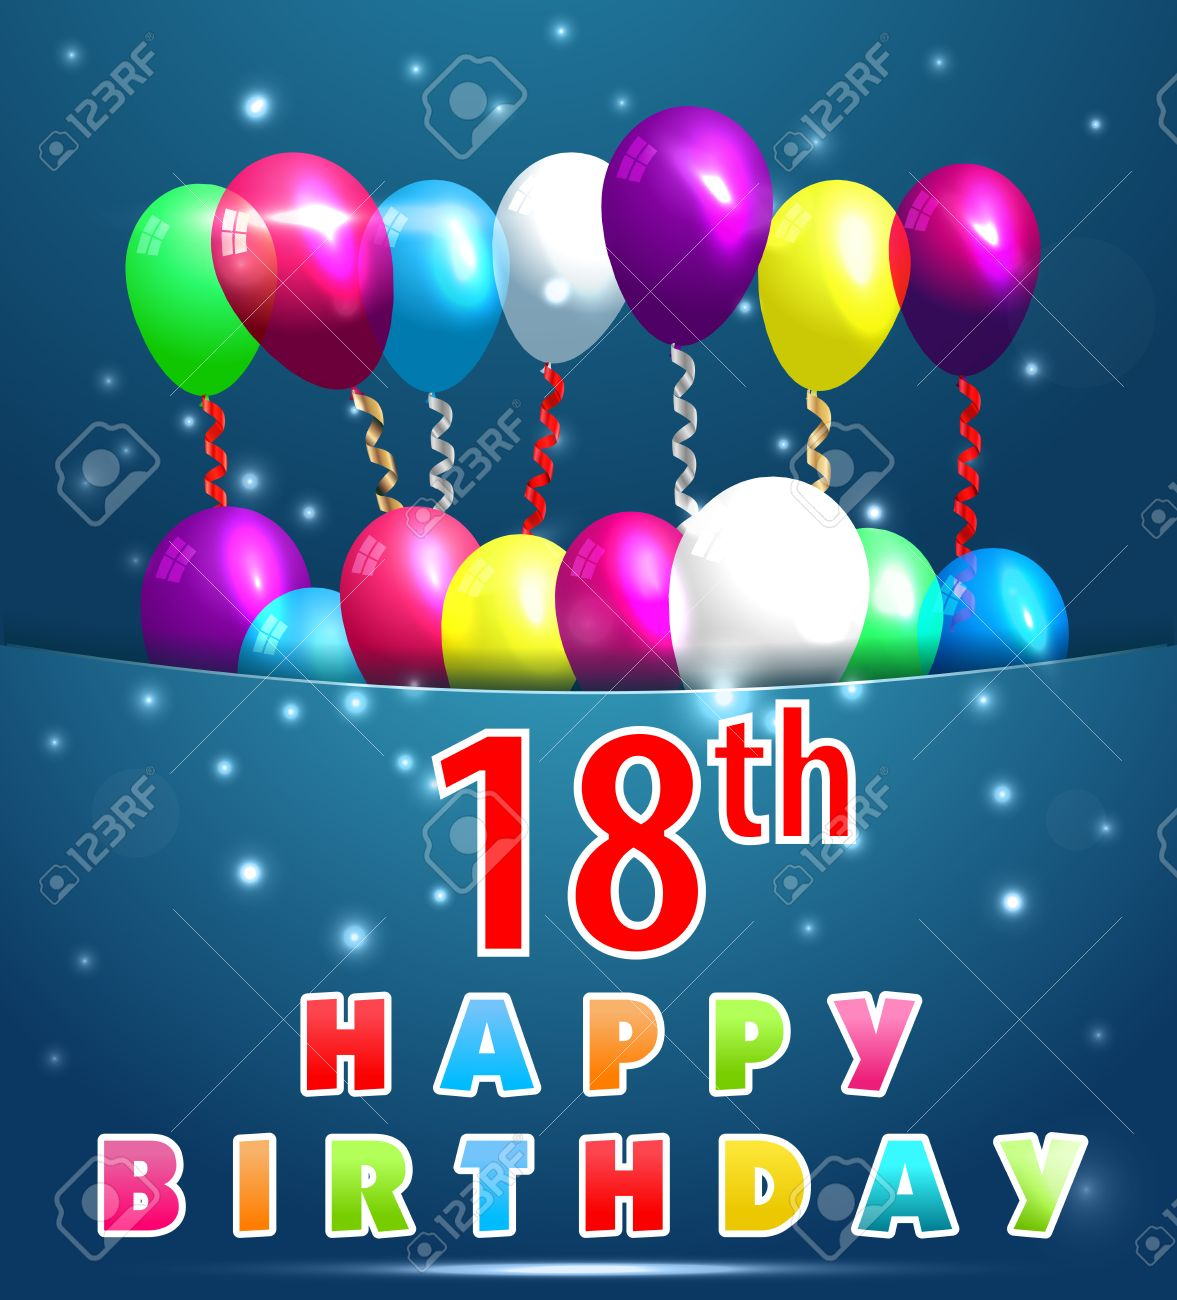 18 Year Happy Birthday Card With Balloons And Ribbons 18th